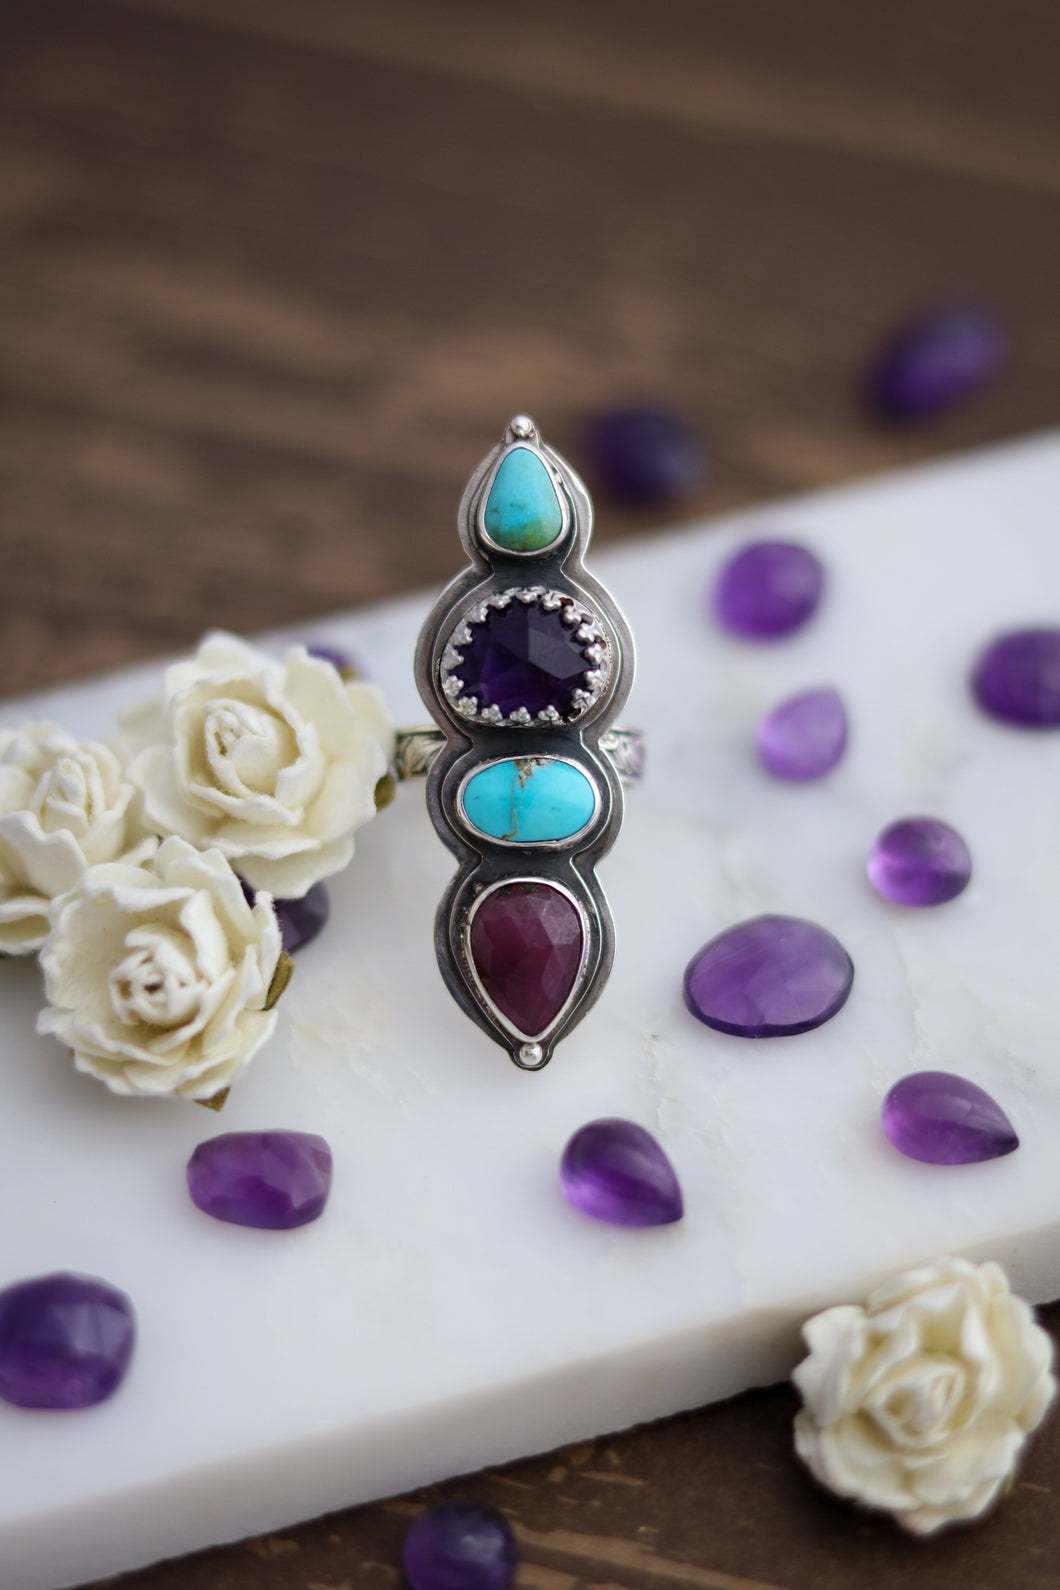 Spring Magic Ring. Amethyst, Turquoise & Sapphire, Size 6.5 -6.75